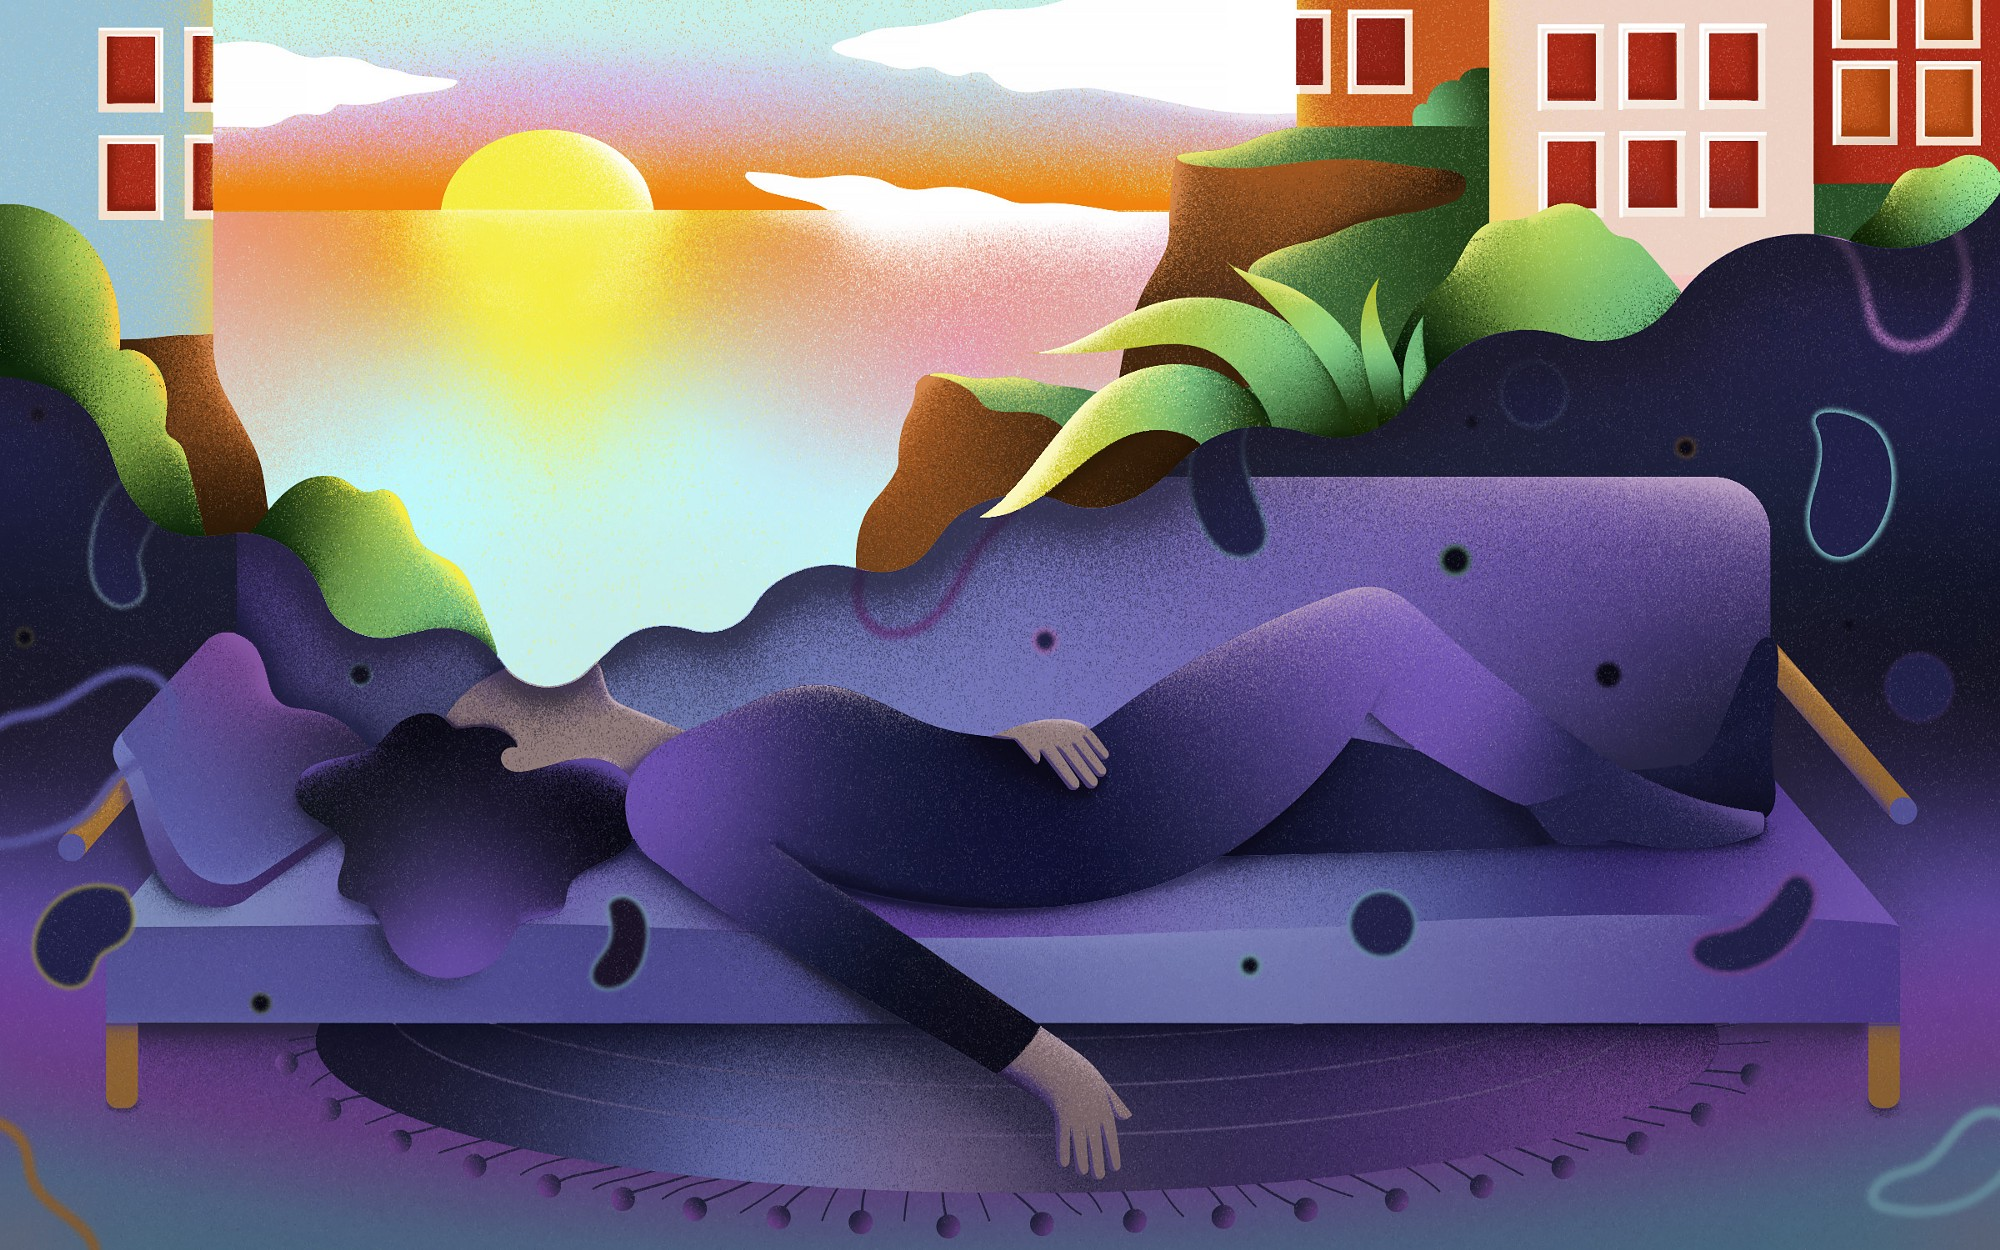 An illustration of a fatigued person, lying down on a bench and dreaming of a brighter day.